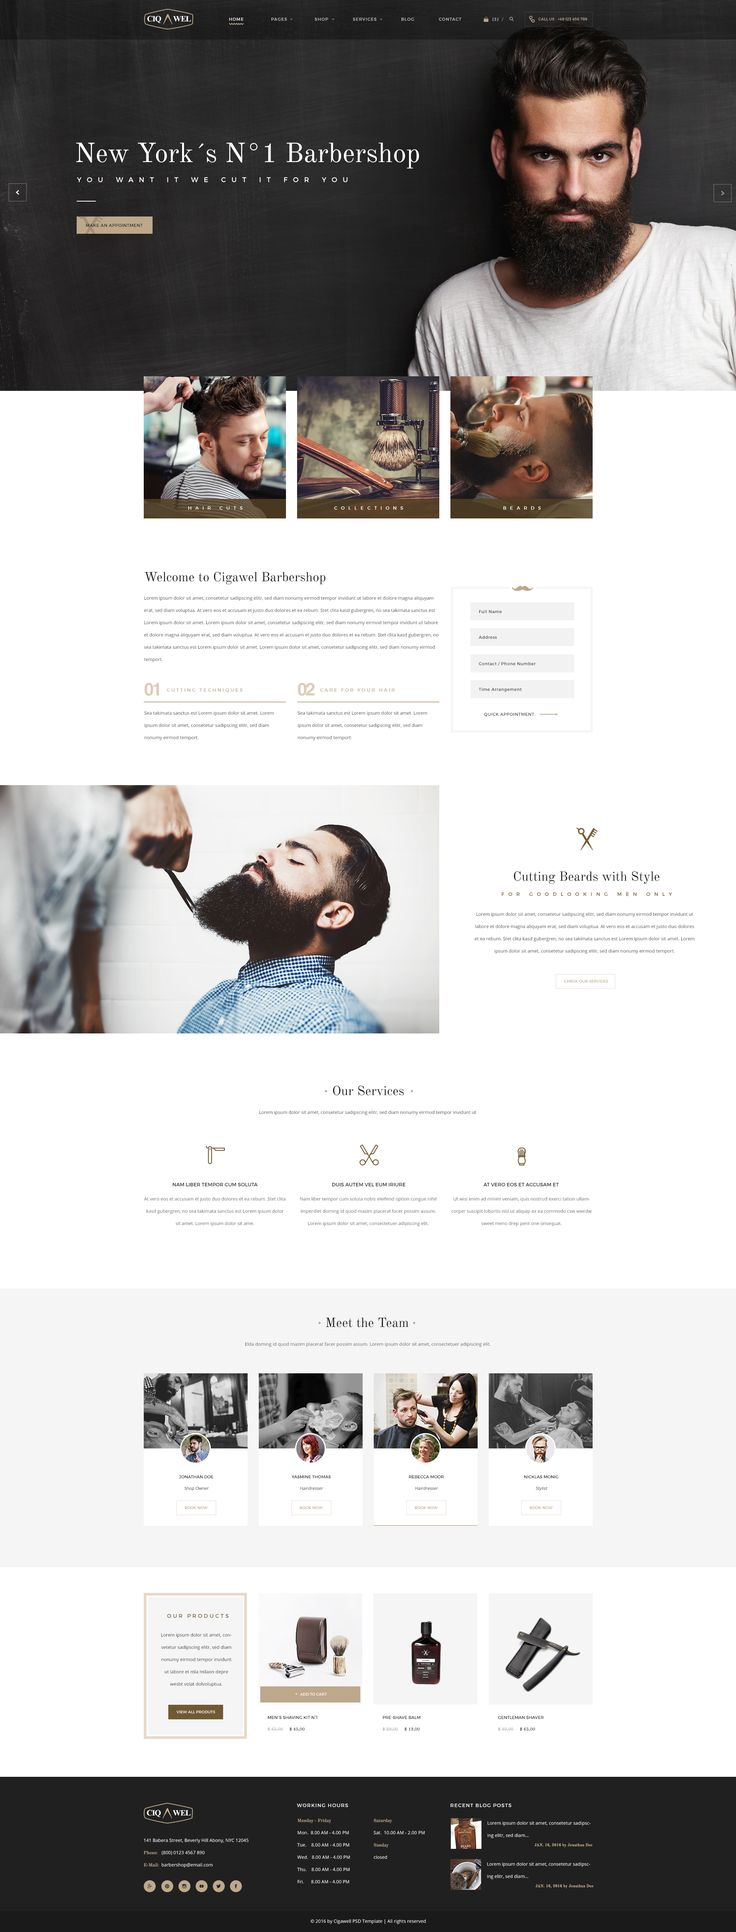 Cigawel - Barbershop PSD Template